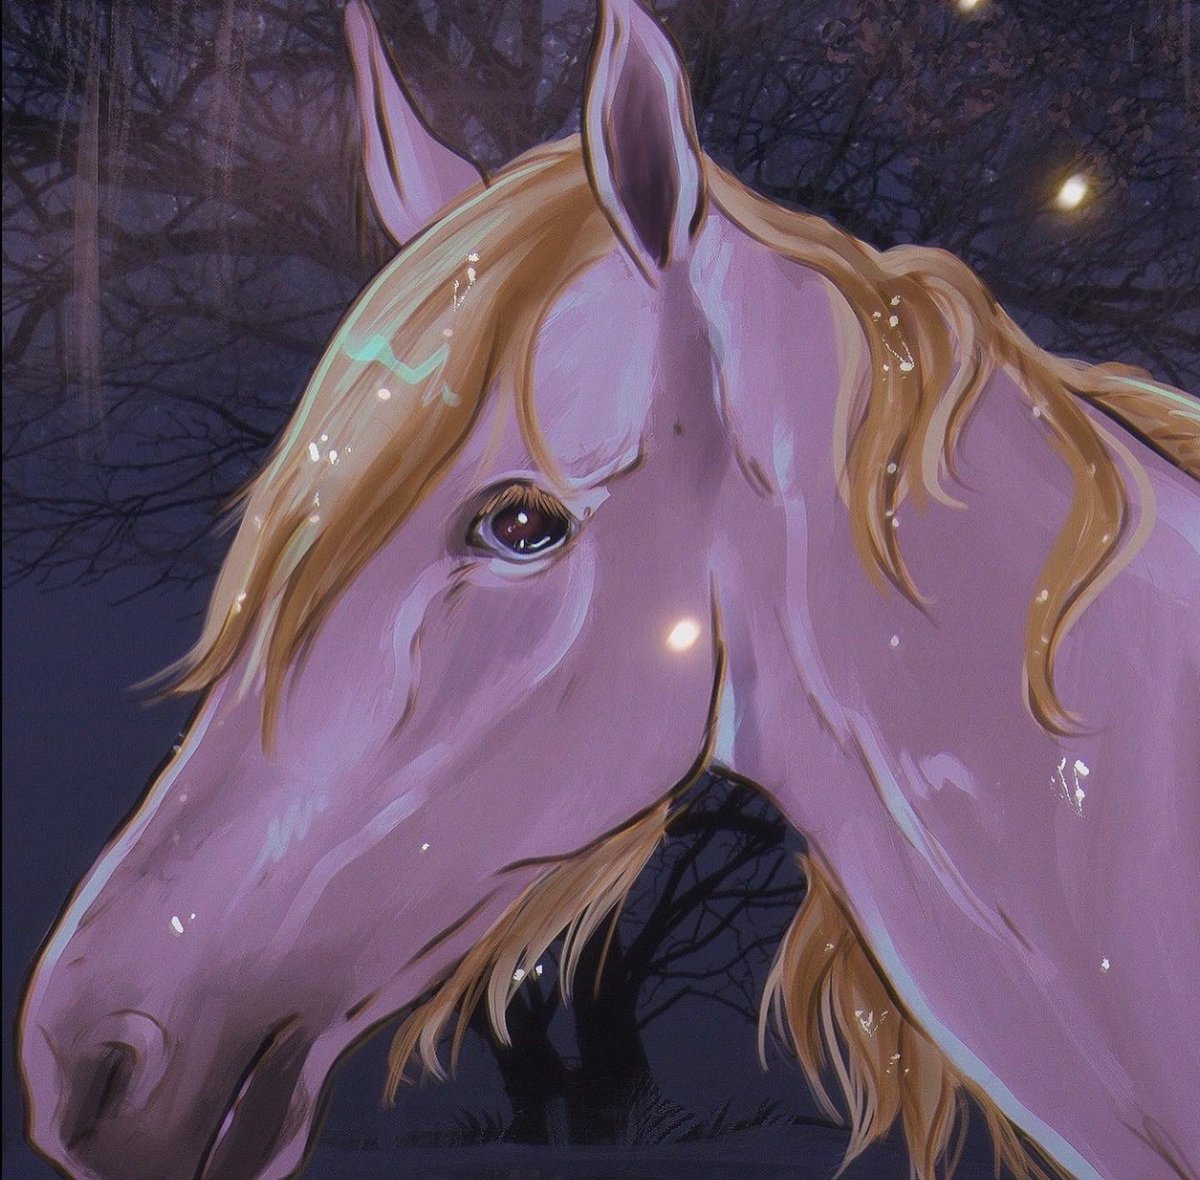 also, the horsey 🐴 🥺 I name her Ivory 💕 https://t.co/mCzlh0S3qz